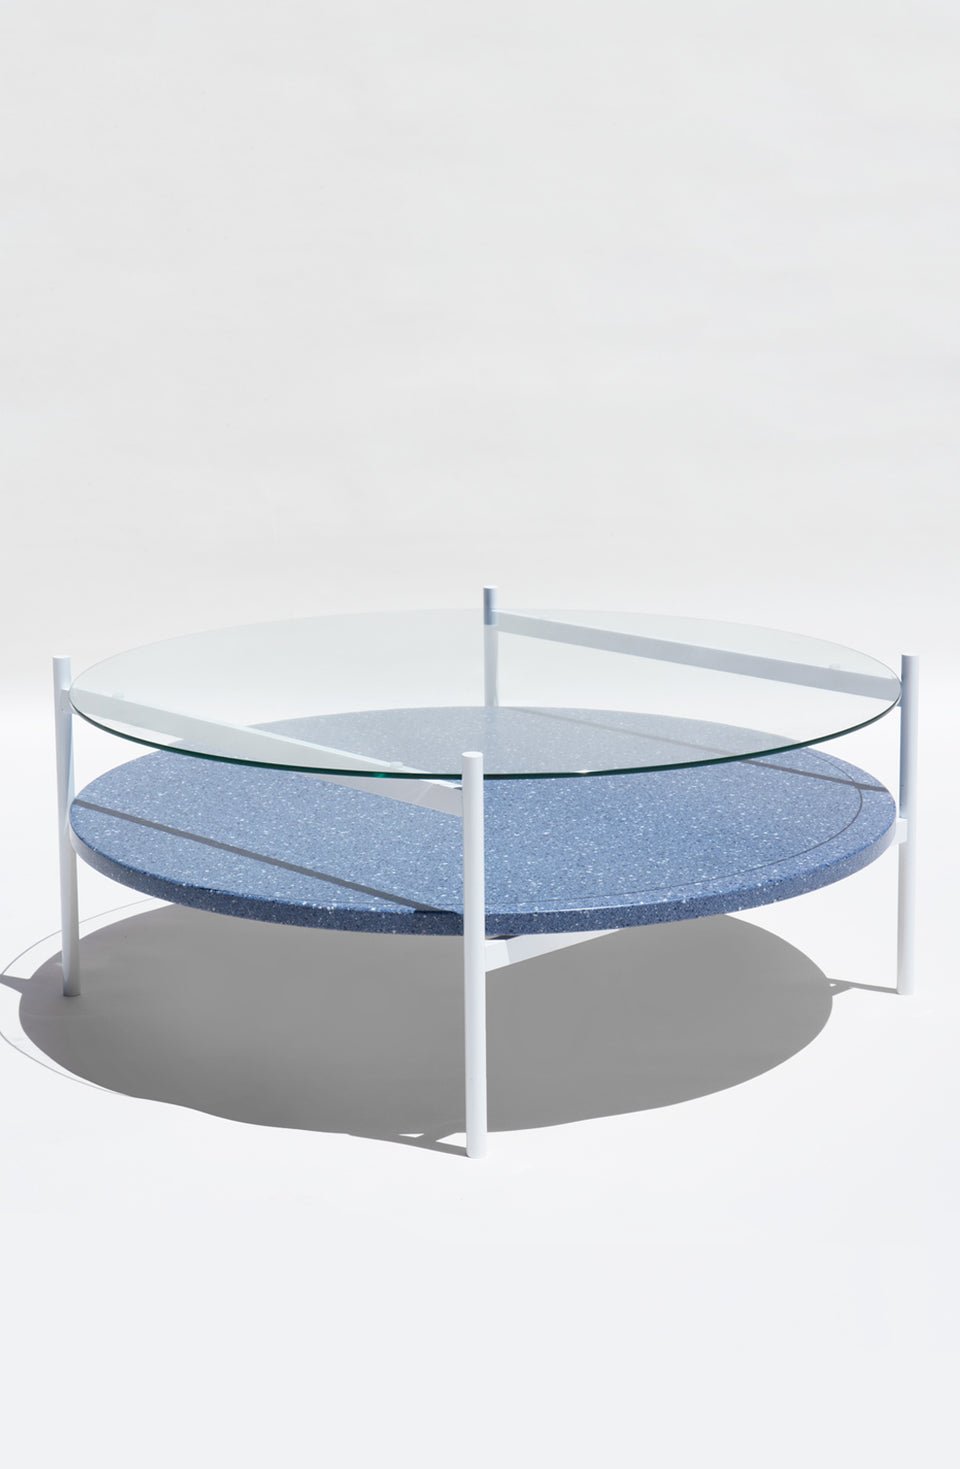 Duotone Circular Coffee Table - White Frame / Clear Glass / Blue Mosaic